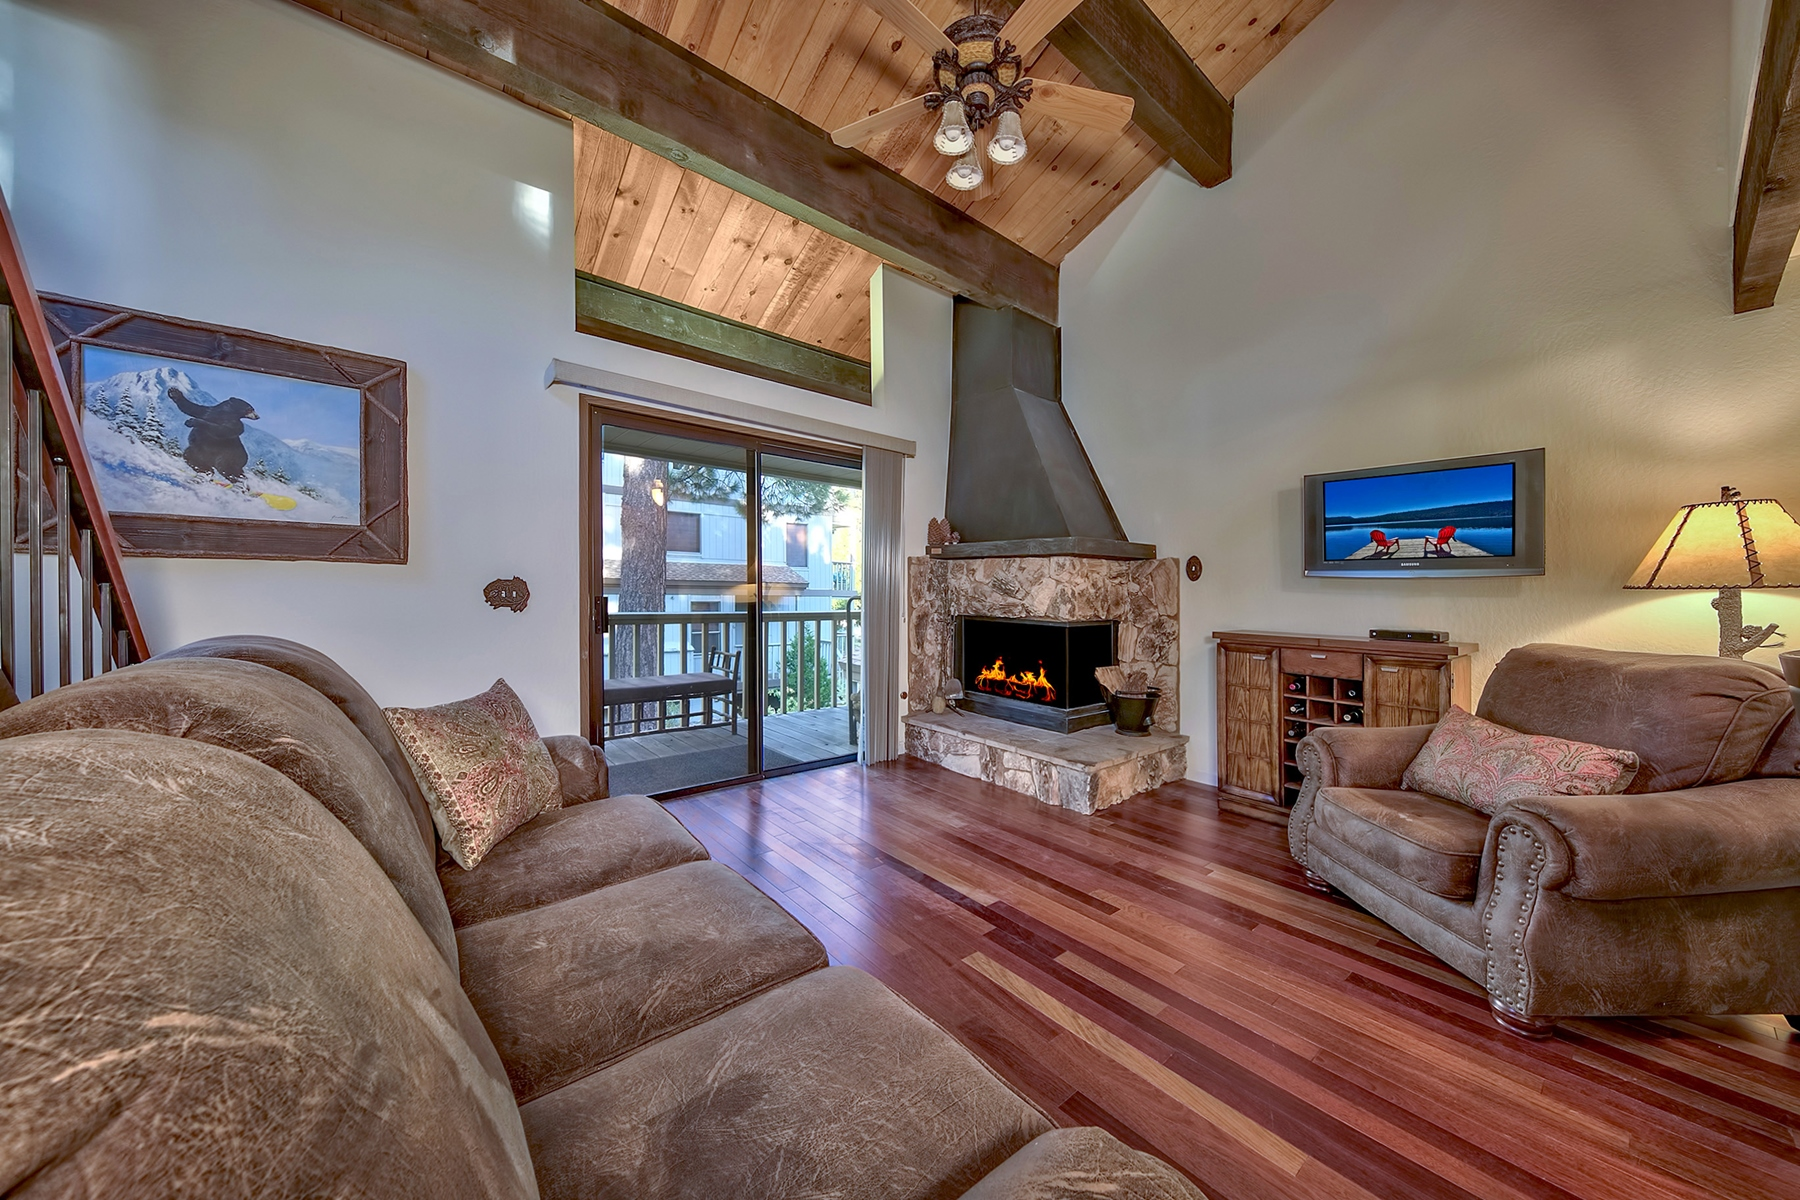 Property for Active at 1001 Commonwealth. Drive #221, Kings Beach, CA 1001 Commonwealth Drive #221 Kings Beach, California 96143 United States